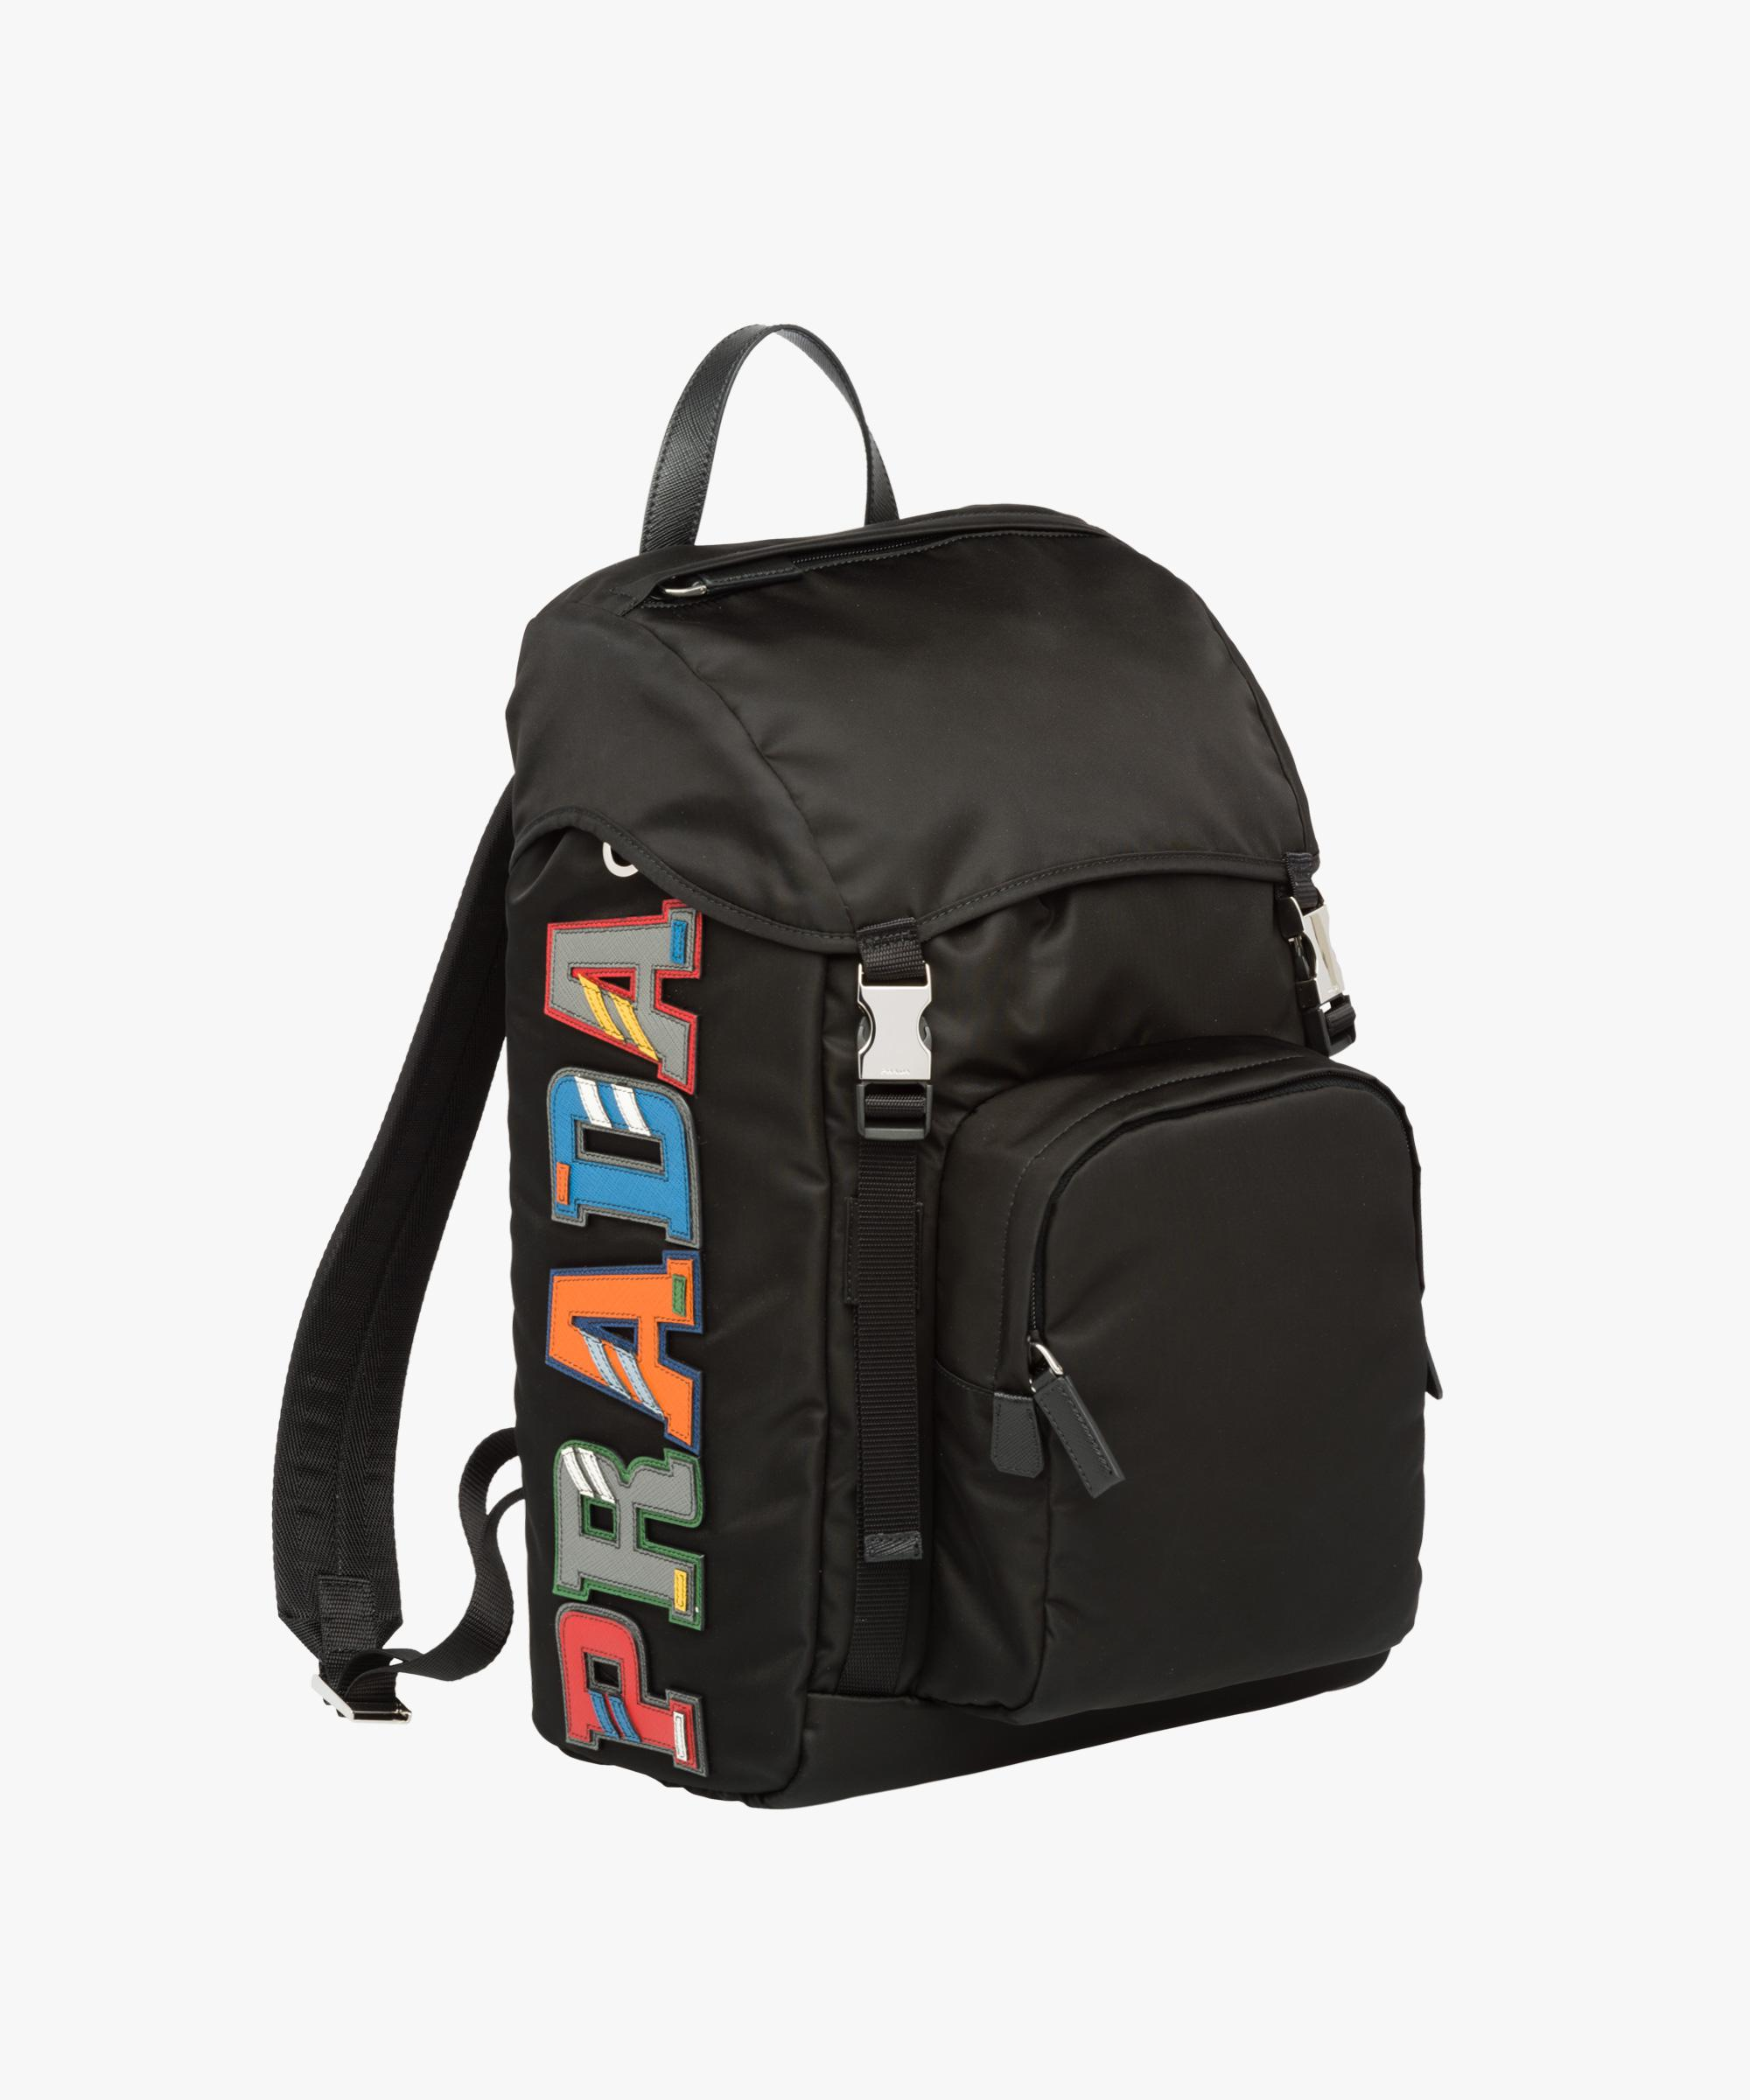 987acd5bdba Prada Nylon And Saffiano Leather Backpack in Black for Men - Lyst